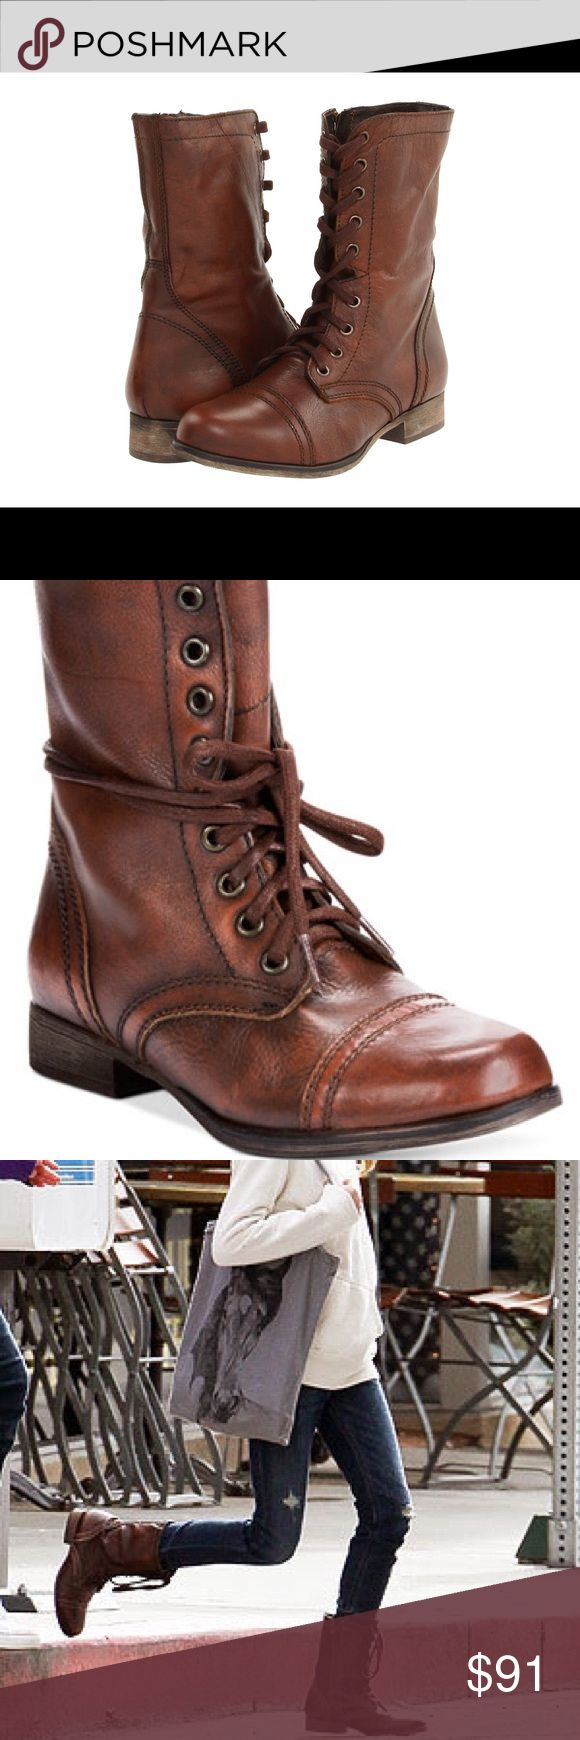 Steve Madden Troopa Brown boots woman 8.5 NIB. Steve Madden Troopa Brwn leather combat boots 8.5. BRAND NEW. Msrp 80-100. I have them in black and they are very comfortable and go with everything from jeans to dresses. Not a lot of wiggle room on price but ask ? Steve Madden Shoes Combat & Moto Boots